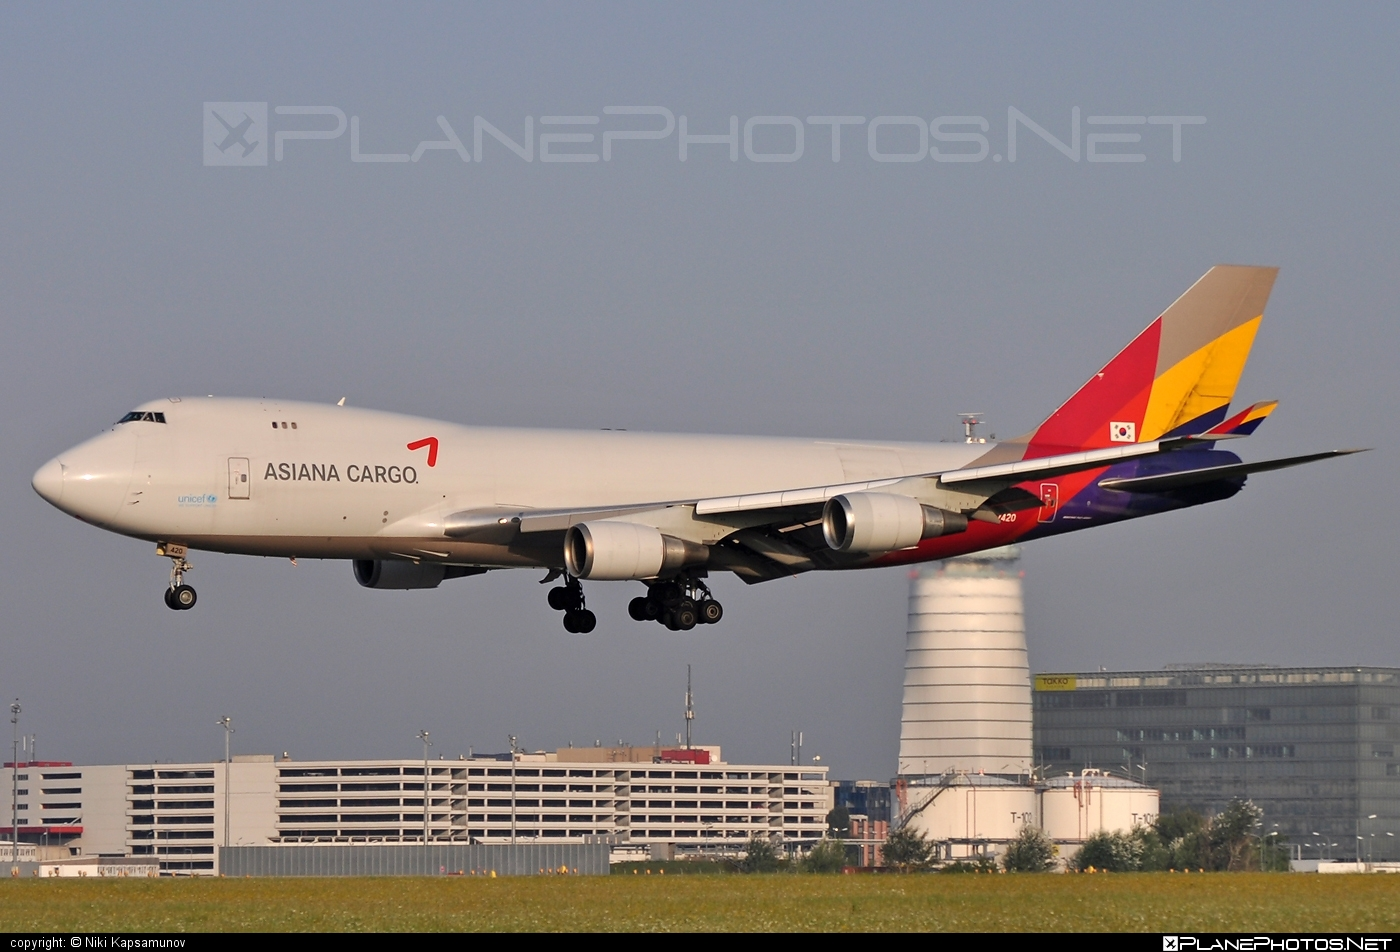 Boeing 747-400F - HL7420 operated by Asiana Cargo #asianacargo #b747 #boeing #boeing747 #jumbo